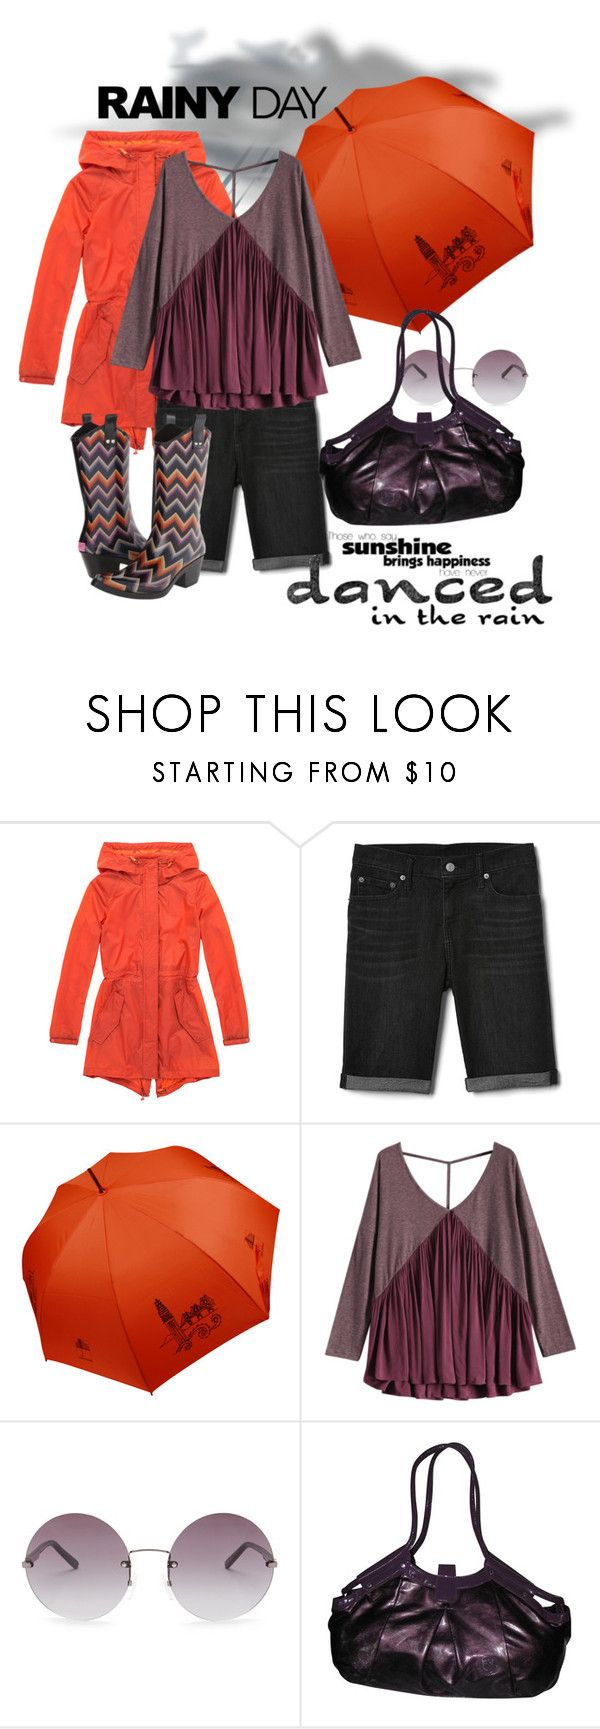 """""""Let's Go Puddle Jumping"""" by daincyng ❤ liked on Polyvore featuring Marc New York, Gap, OXYDO, Emmanuelle Khanh, M&F Western and rainyday"""